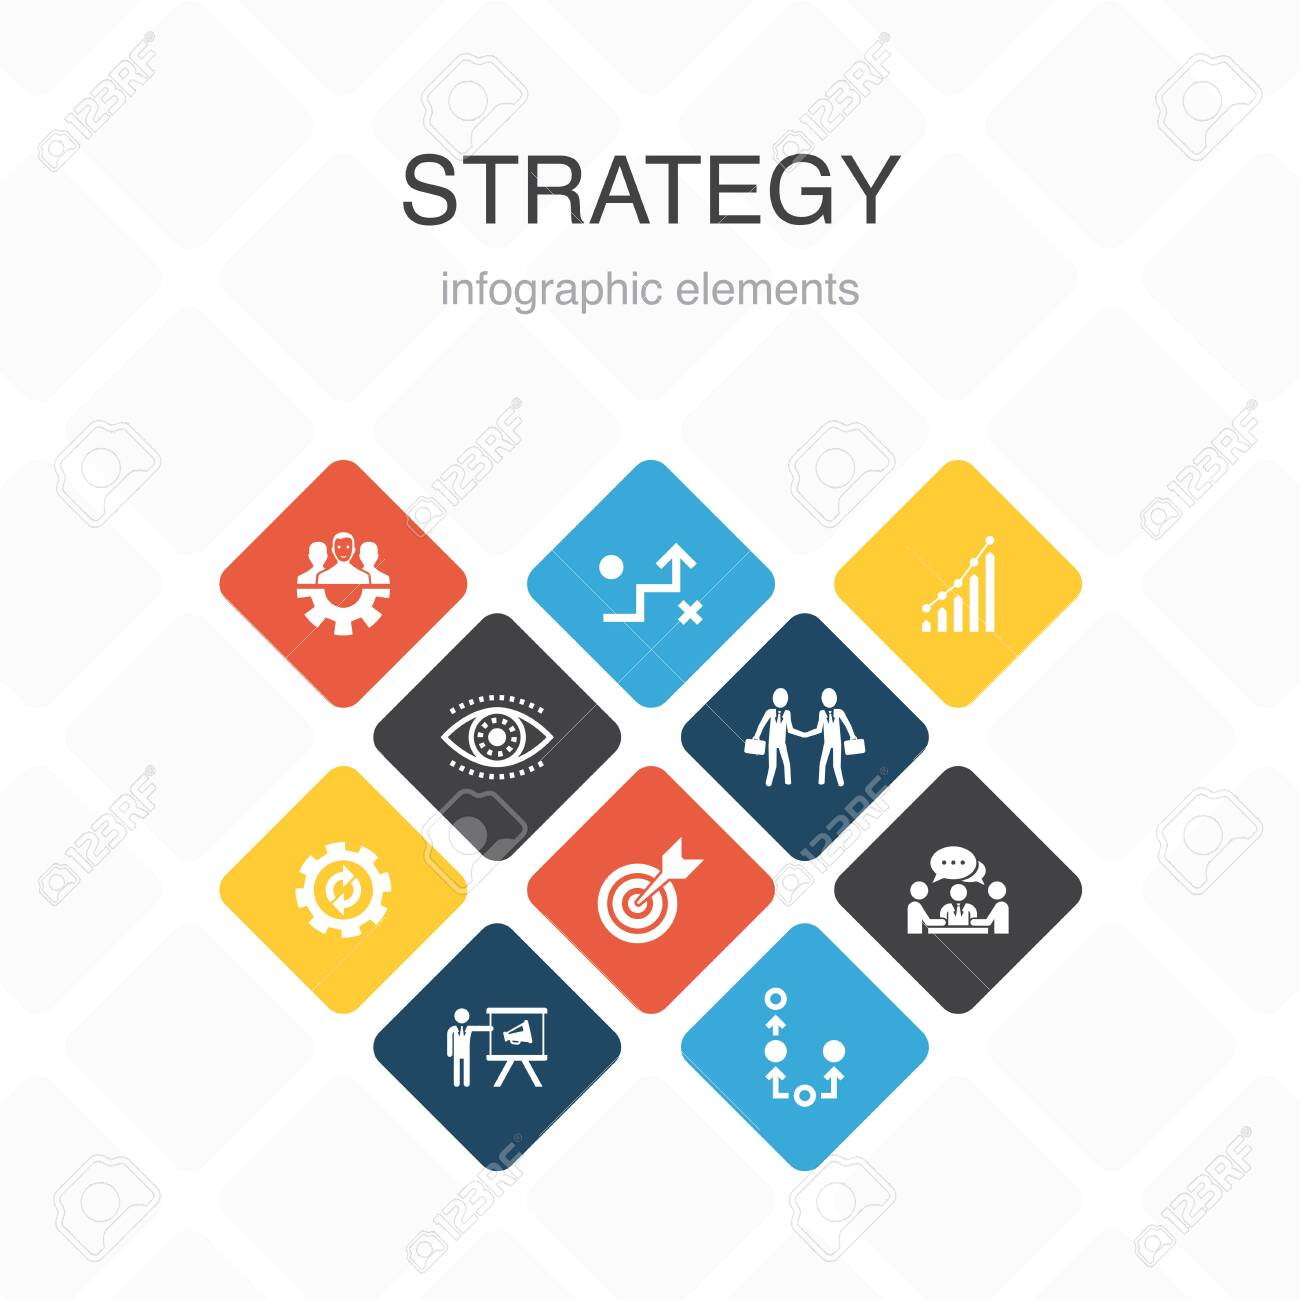 Strategy Infographic 10 option color design.goal, growth, process, teamwork simple icons - 132032632